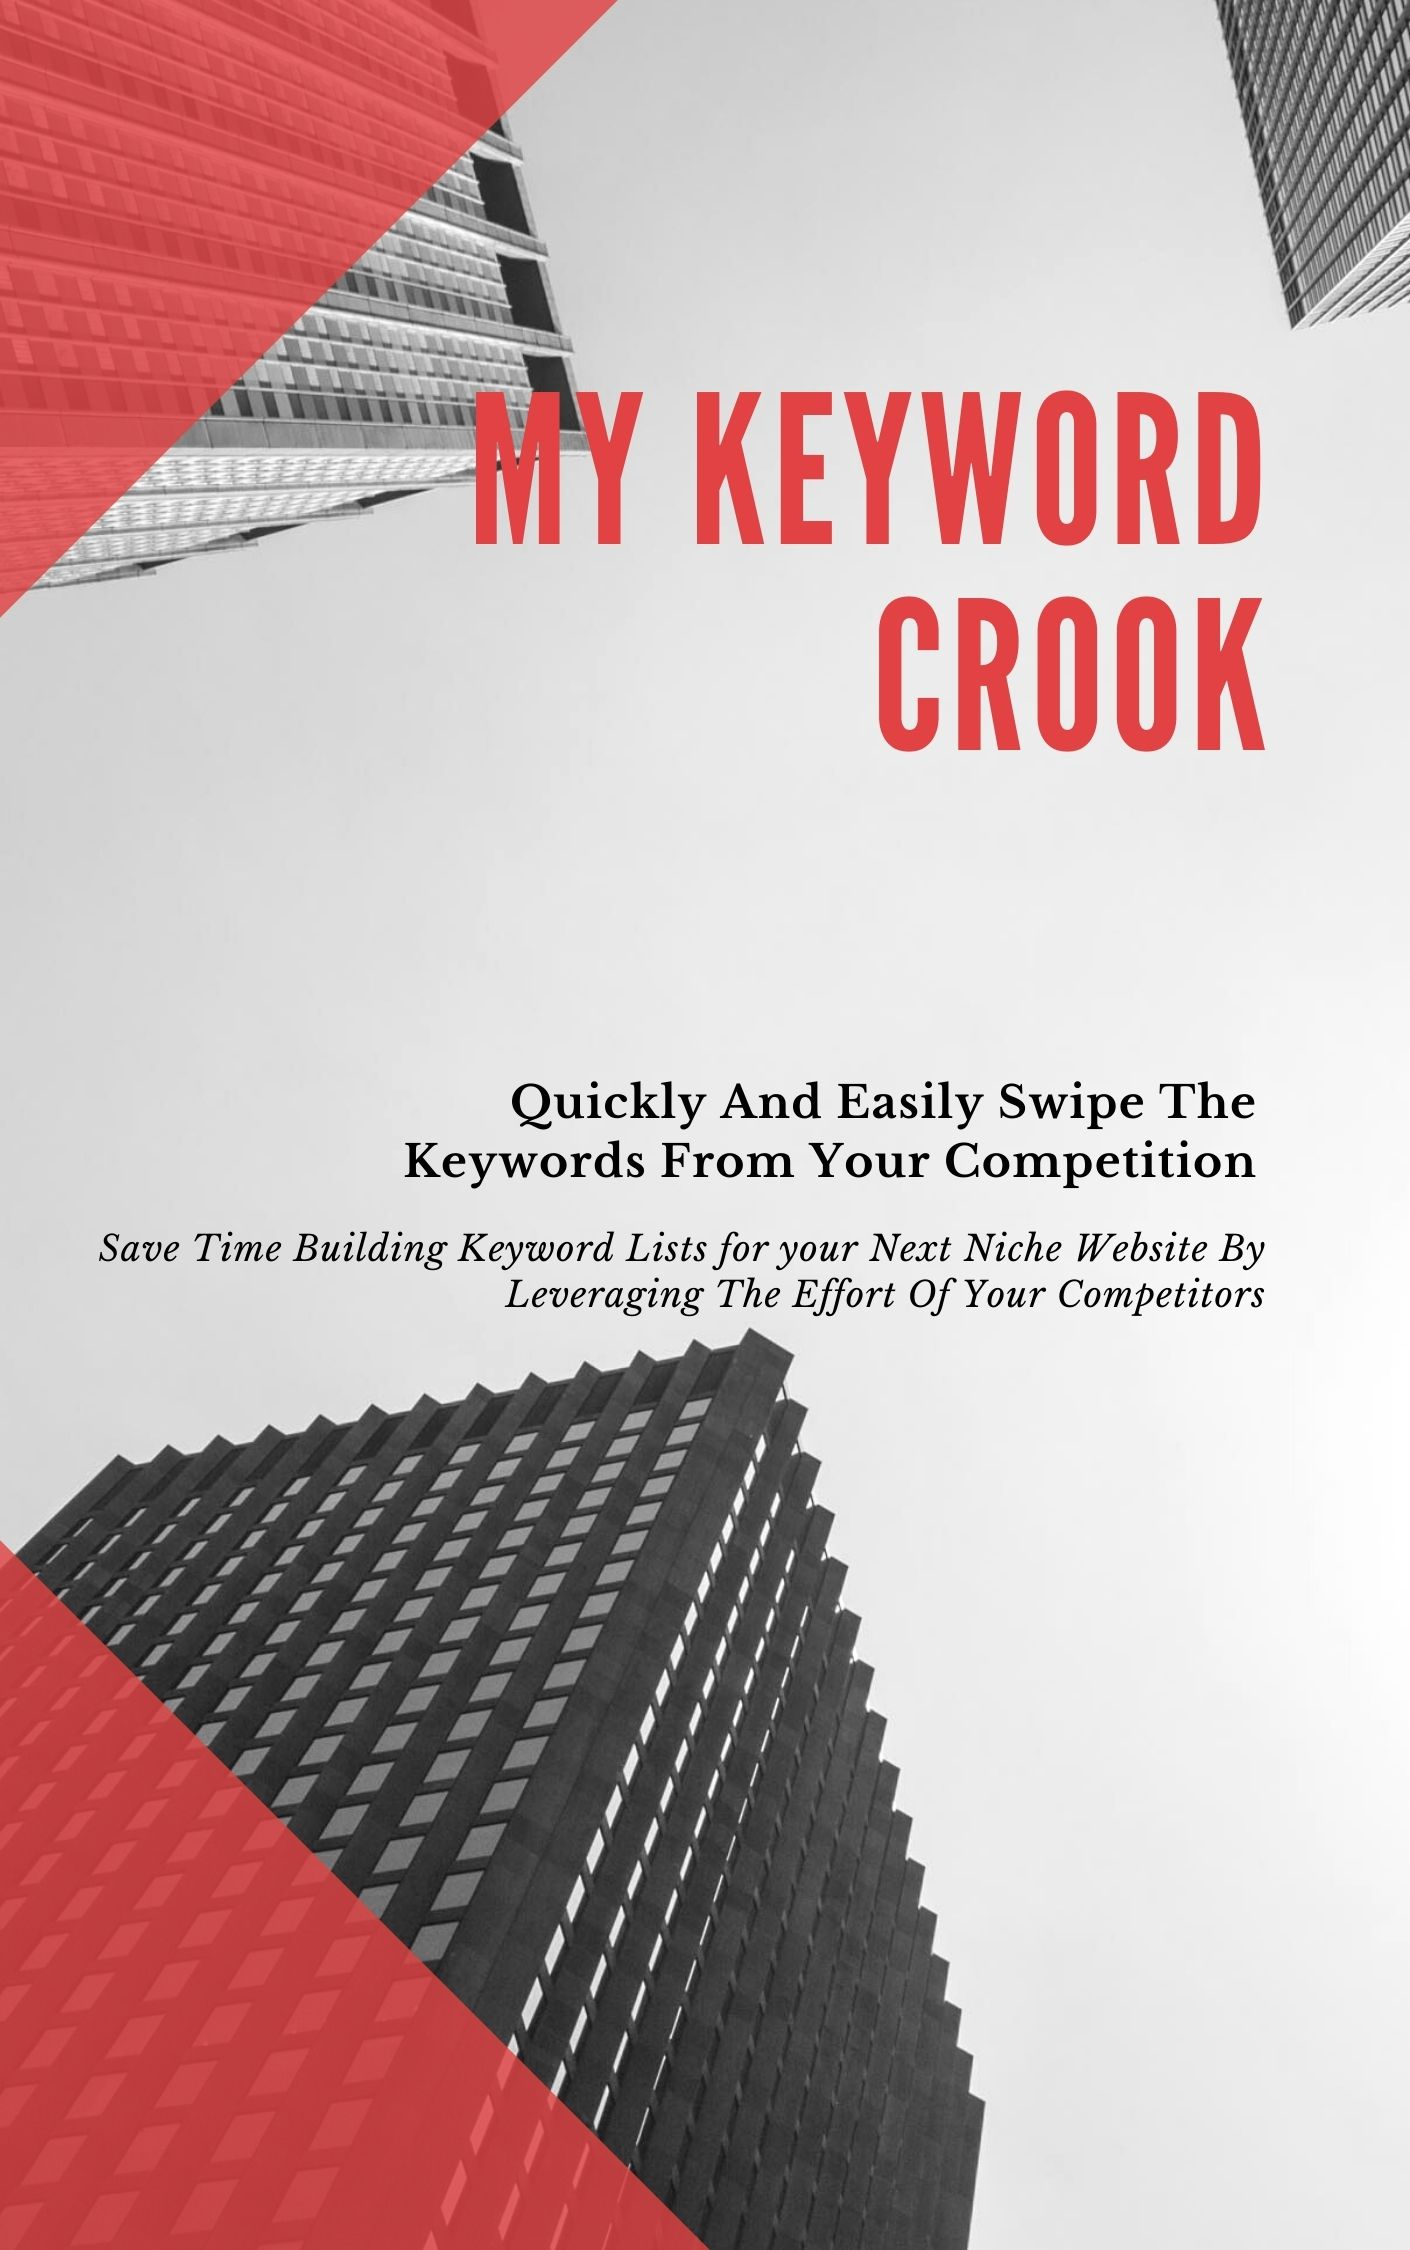 My Keyword Crook- A Software Program that instantly draws in thousands of keyword phrases